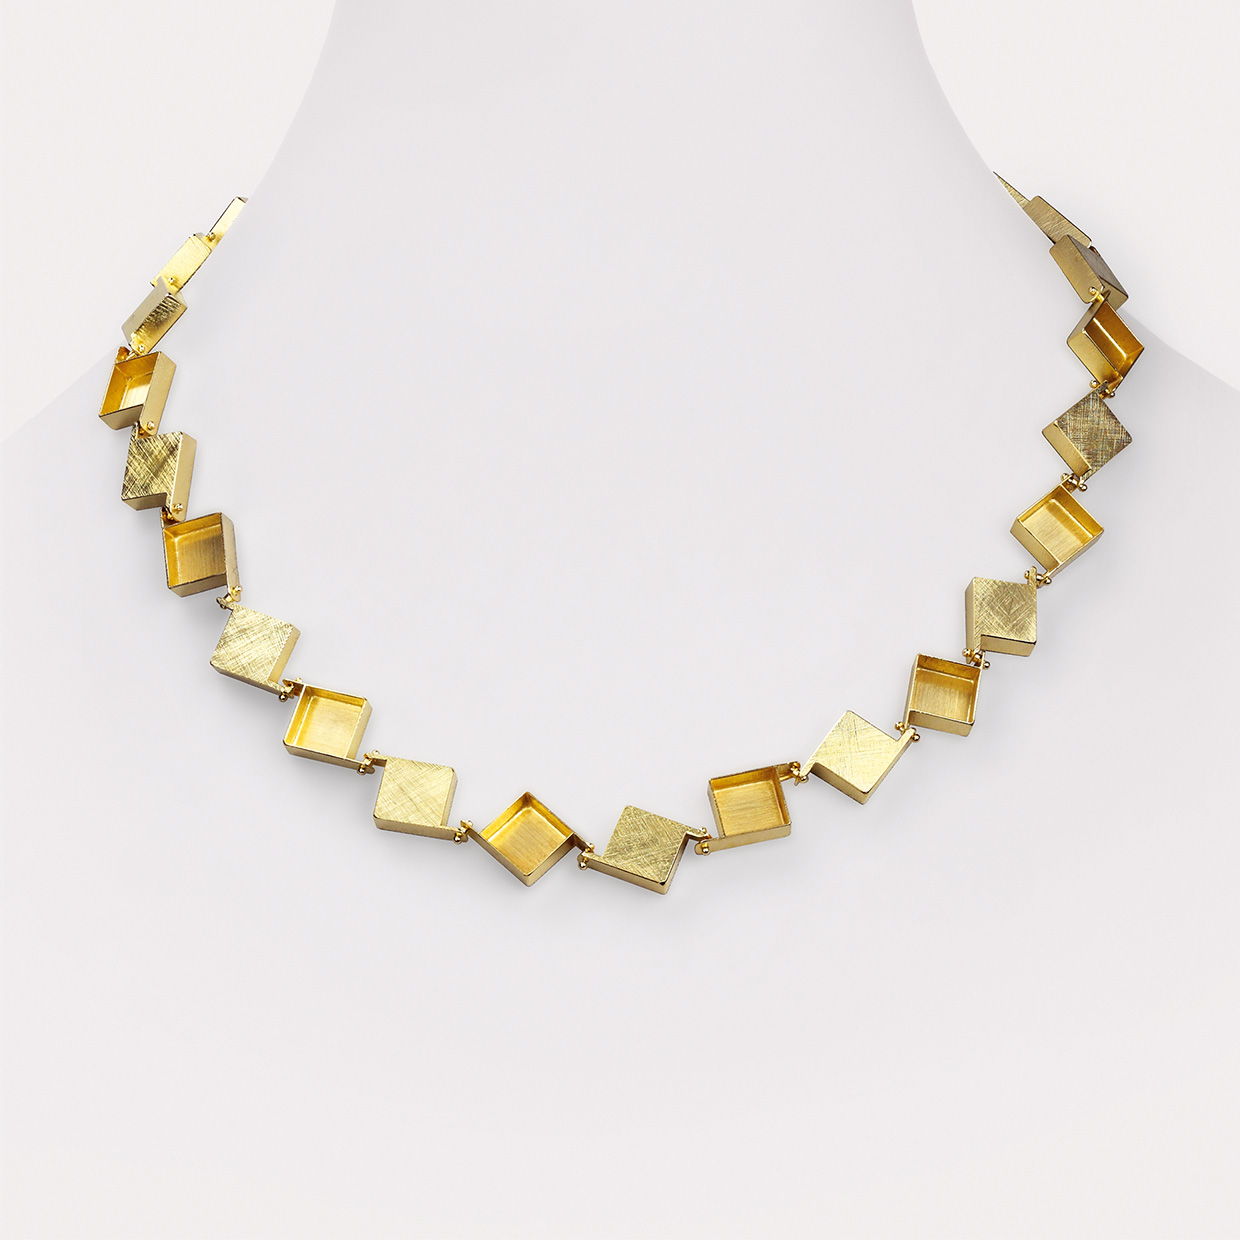 necklace  2015  gold  750  510x13x4  mm